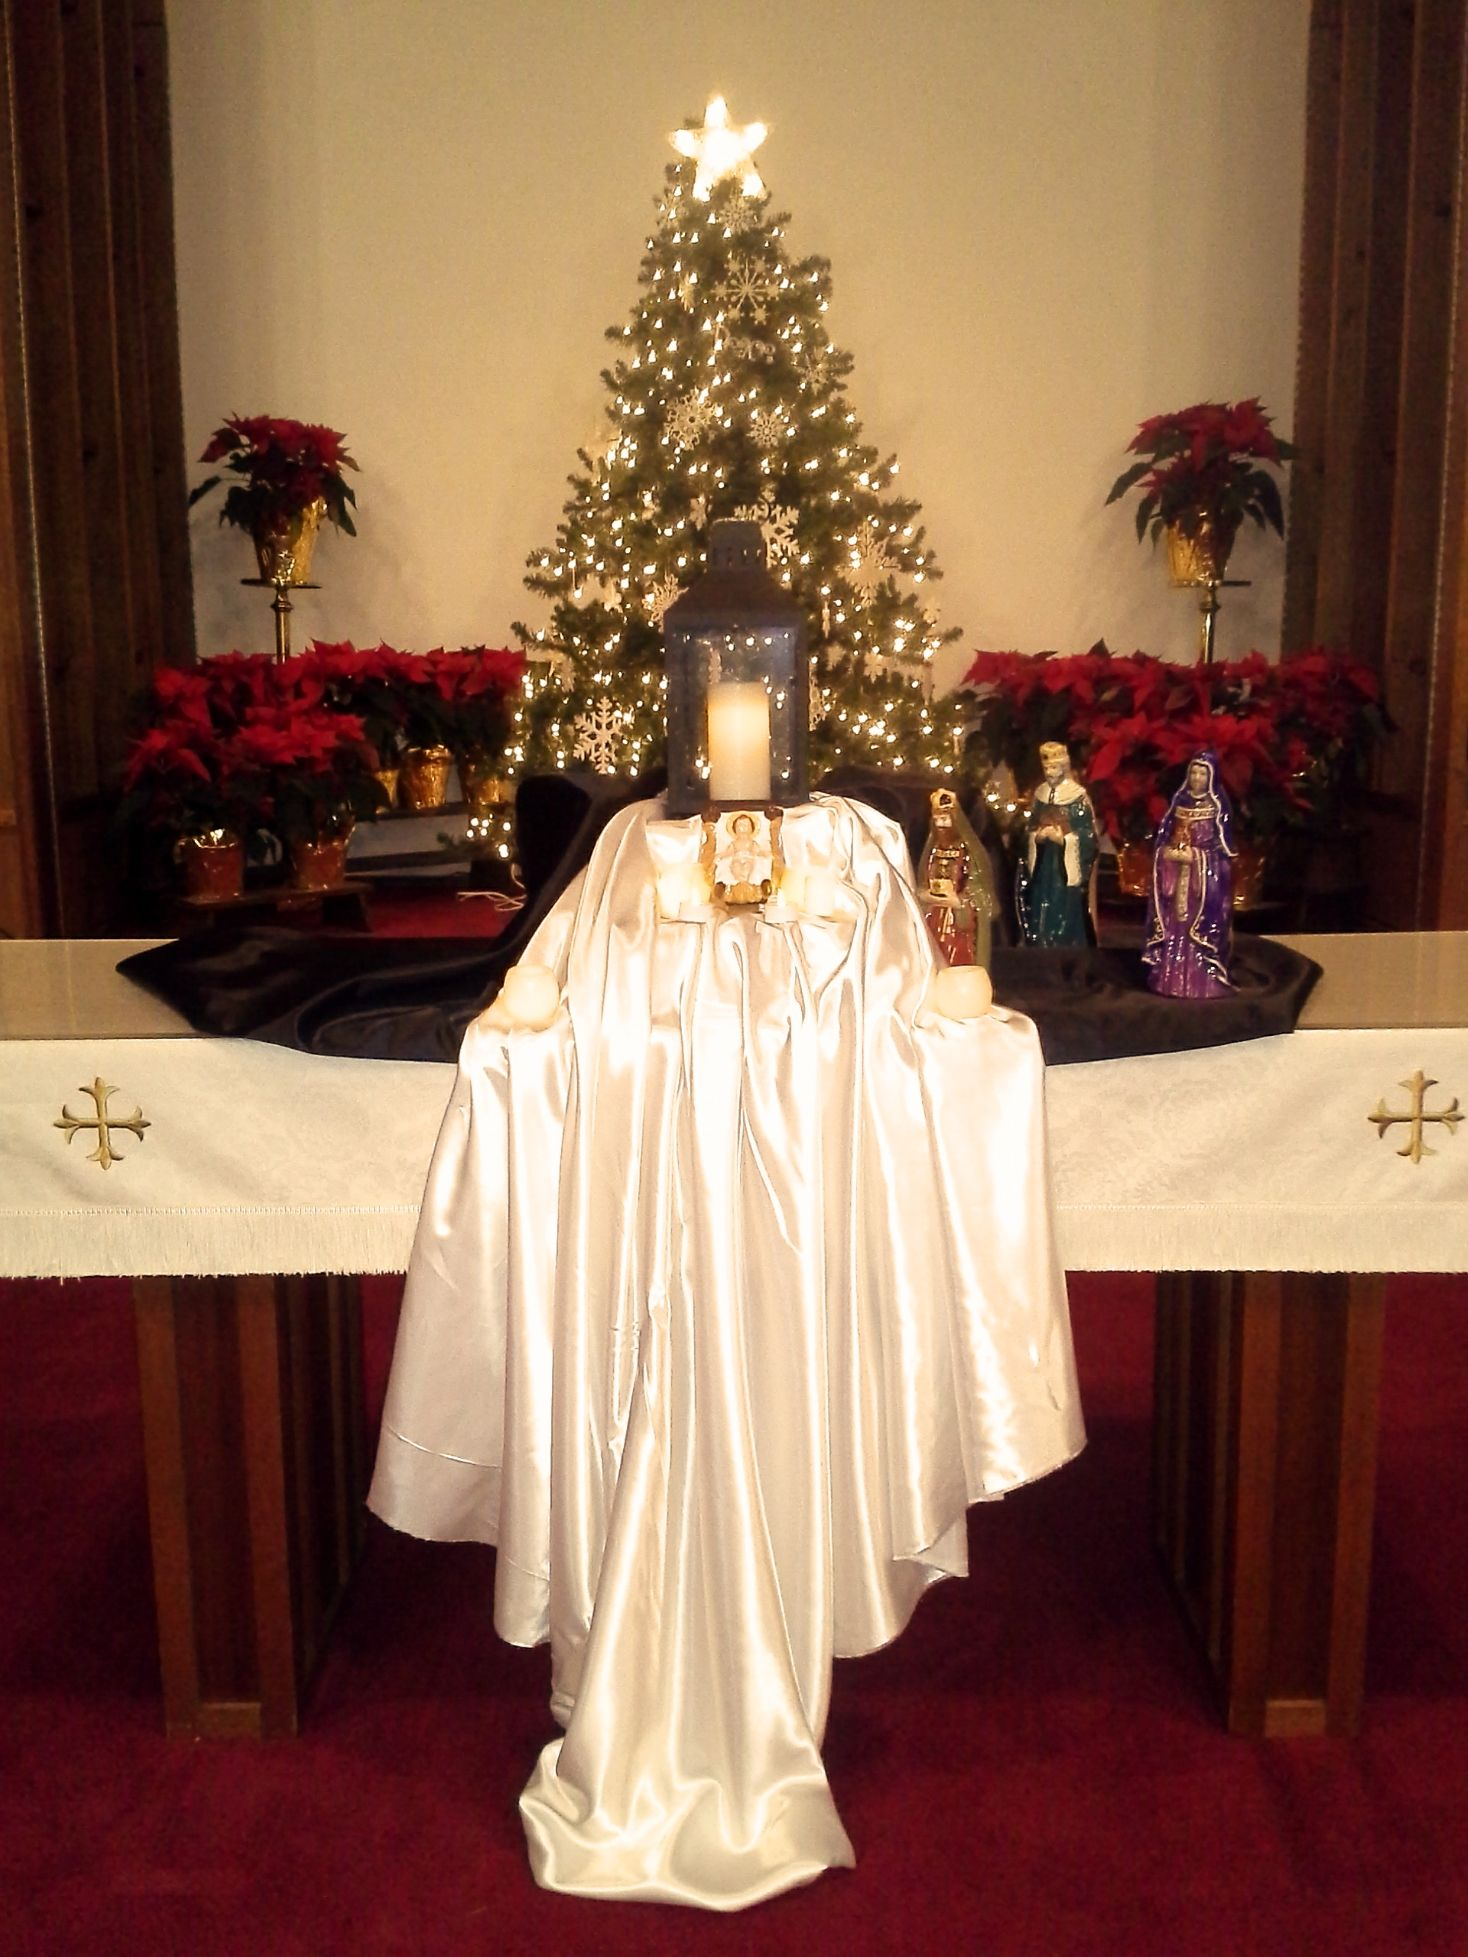 Church decorations for january - Altarscape For January 4 2015 Morrisville United Methodist Church Morrisville Pa